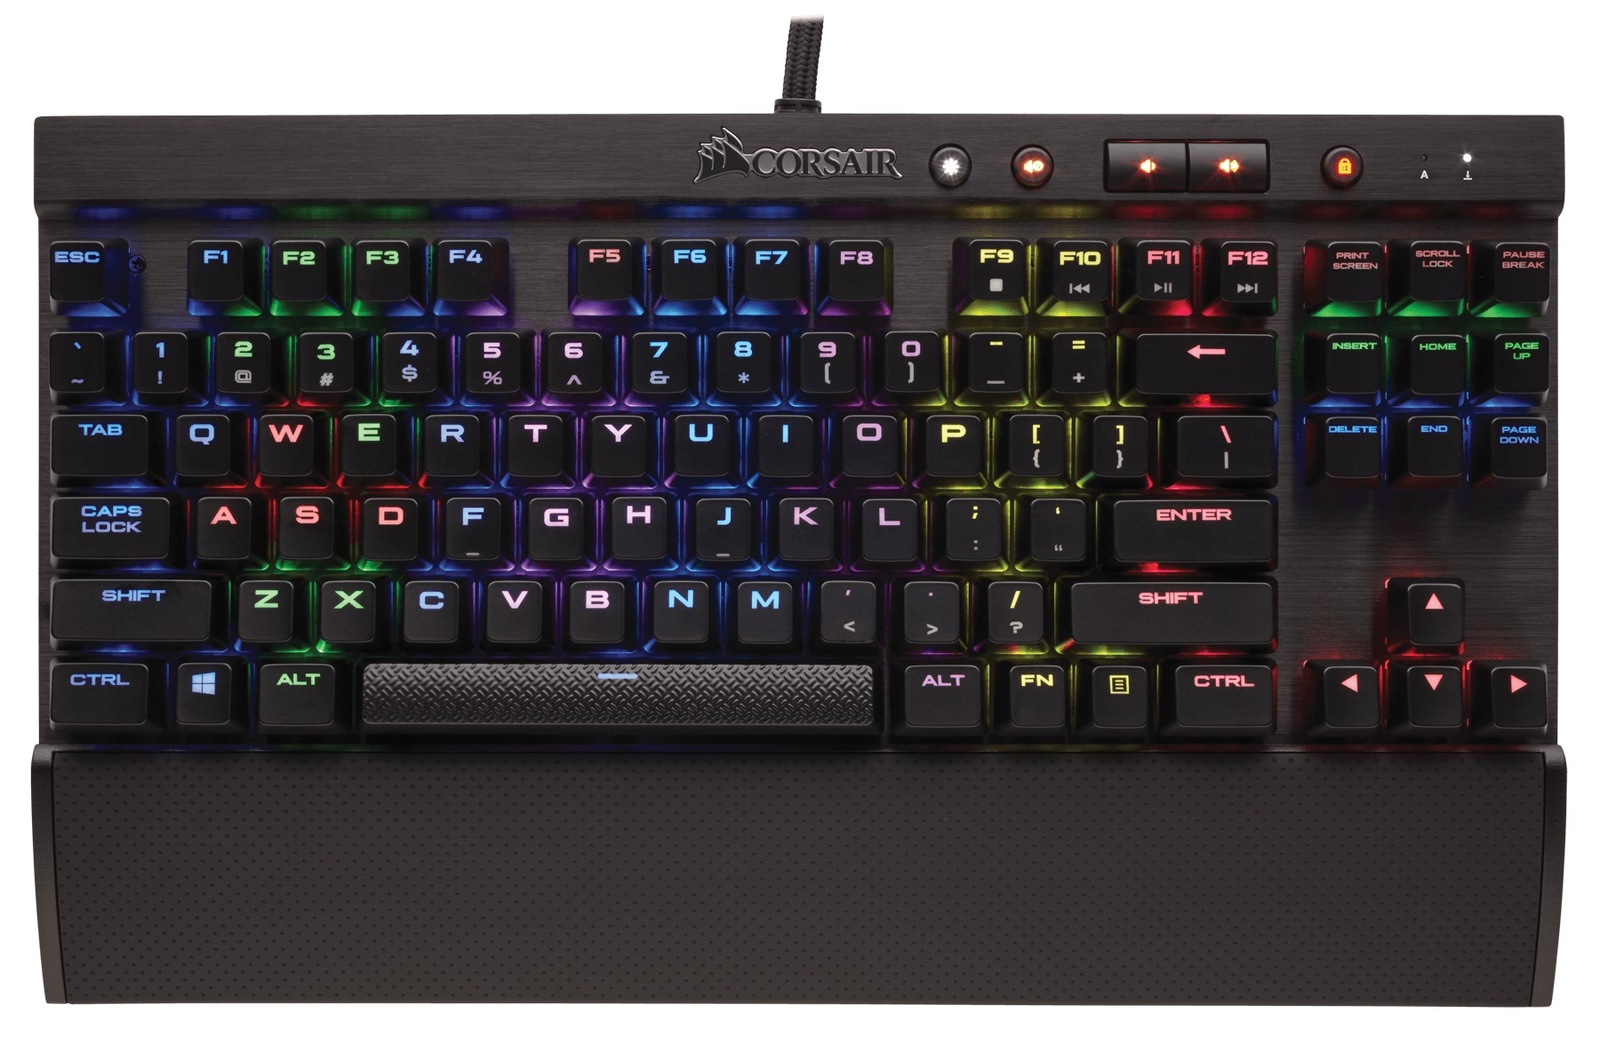 Corsair K65 RGB Rapidfire Mechanical Gaming Keyboard for PC Games image